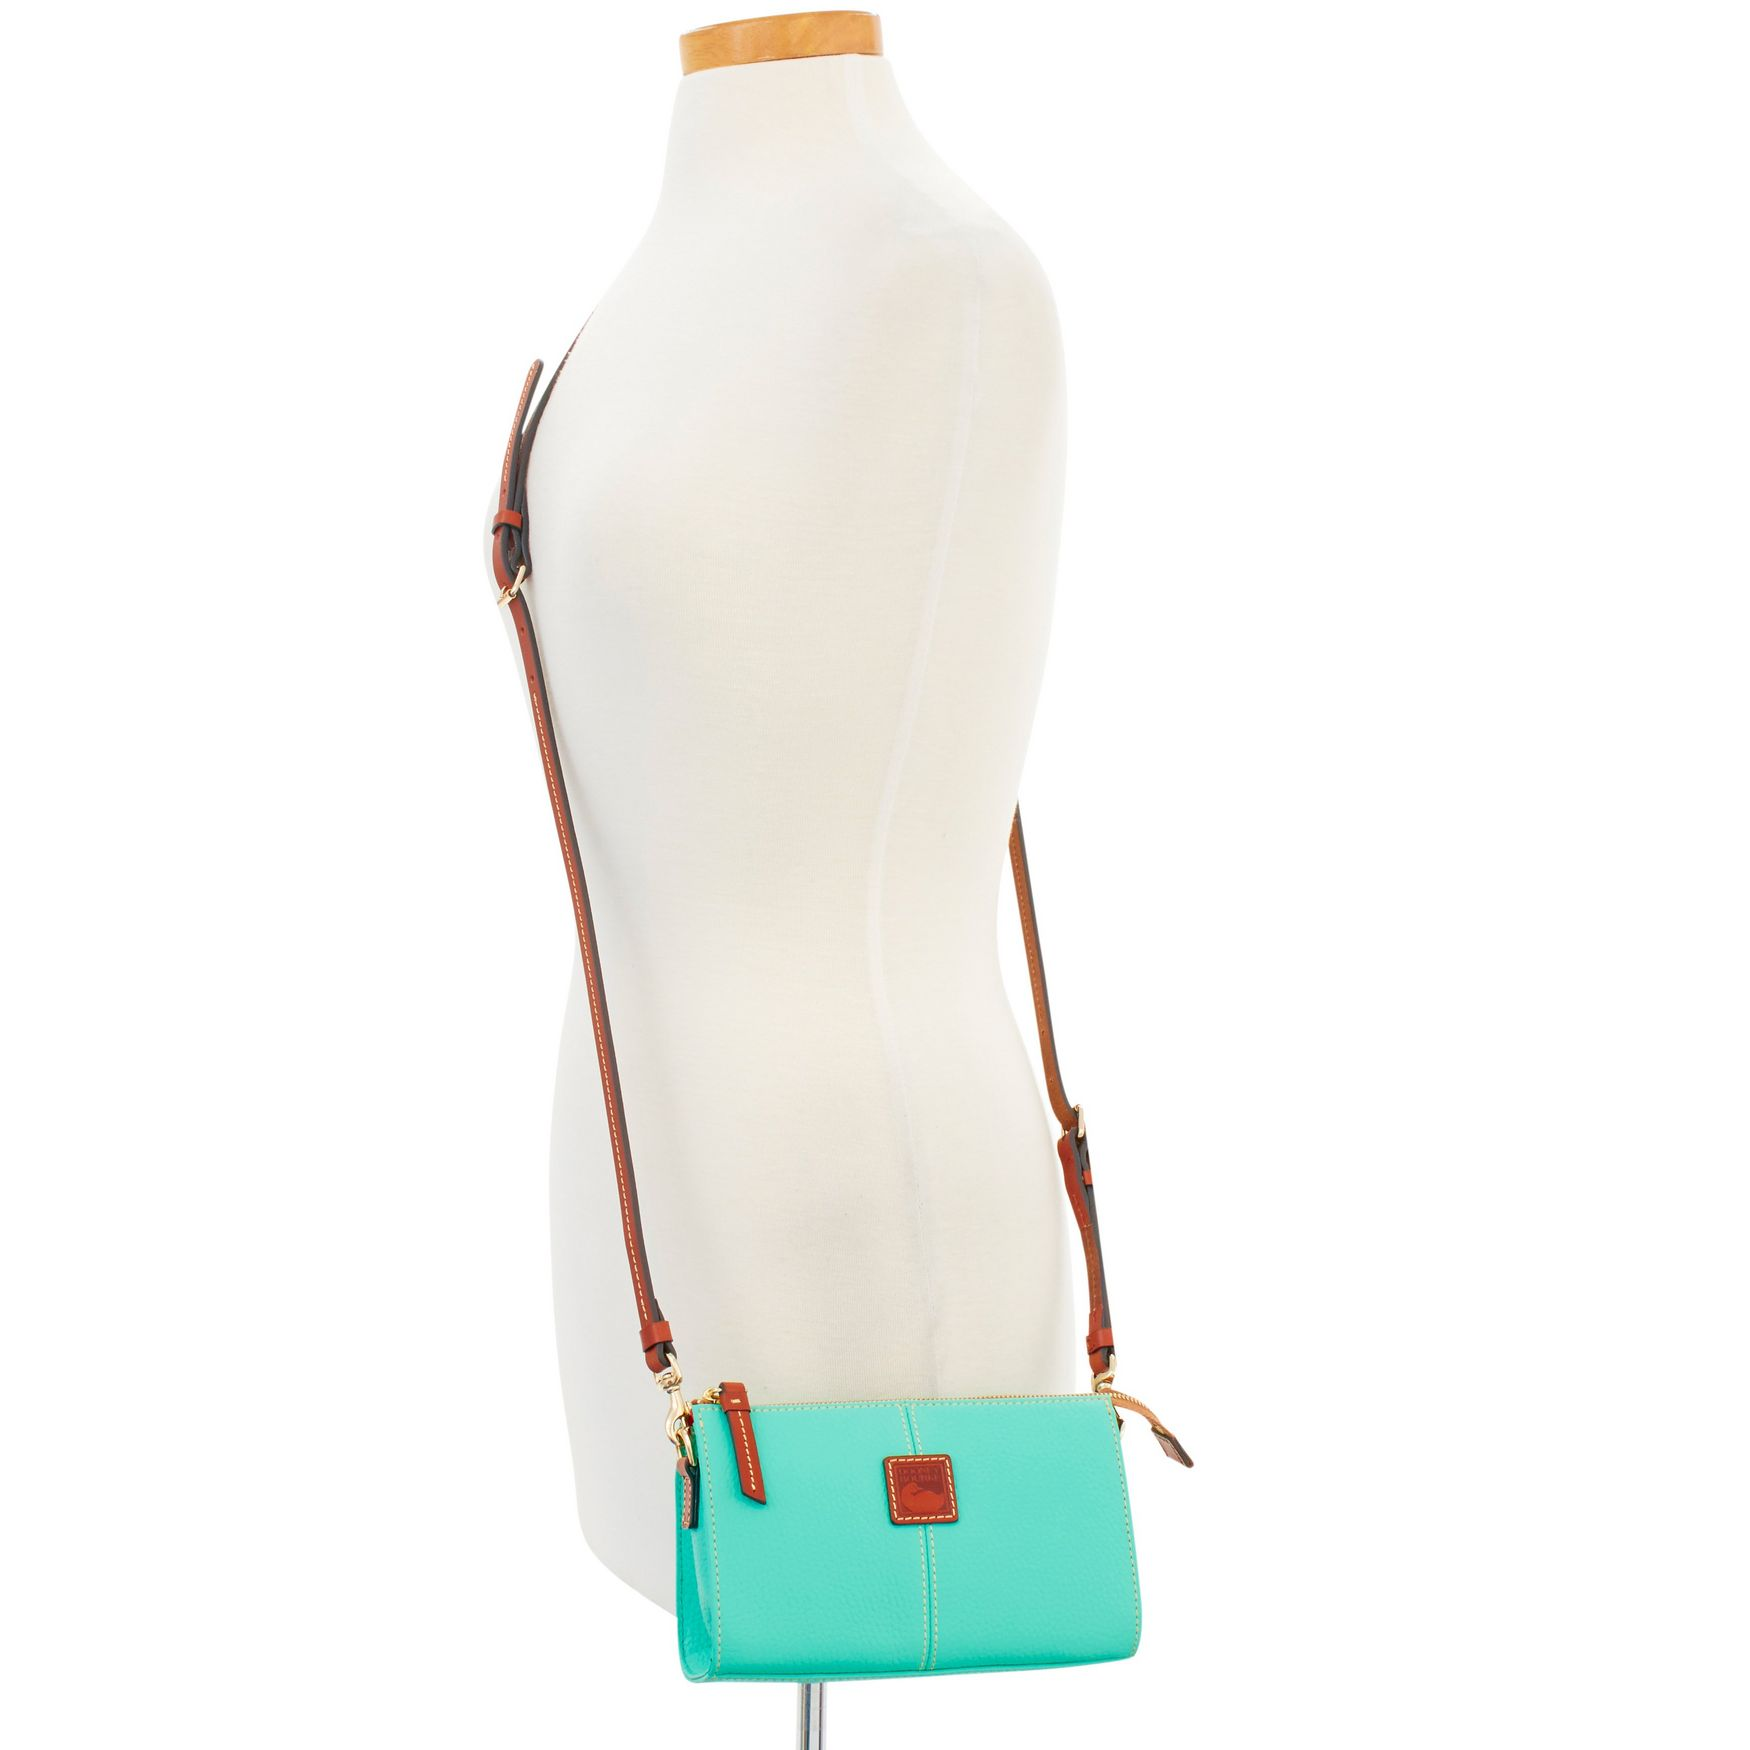 Dooney-amp-Bourke-Pebble-Grain-Small-Janine-Crossbody-Shoulder-Bag thumbnail 30